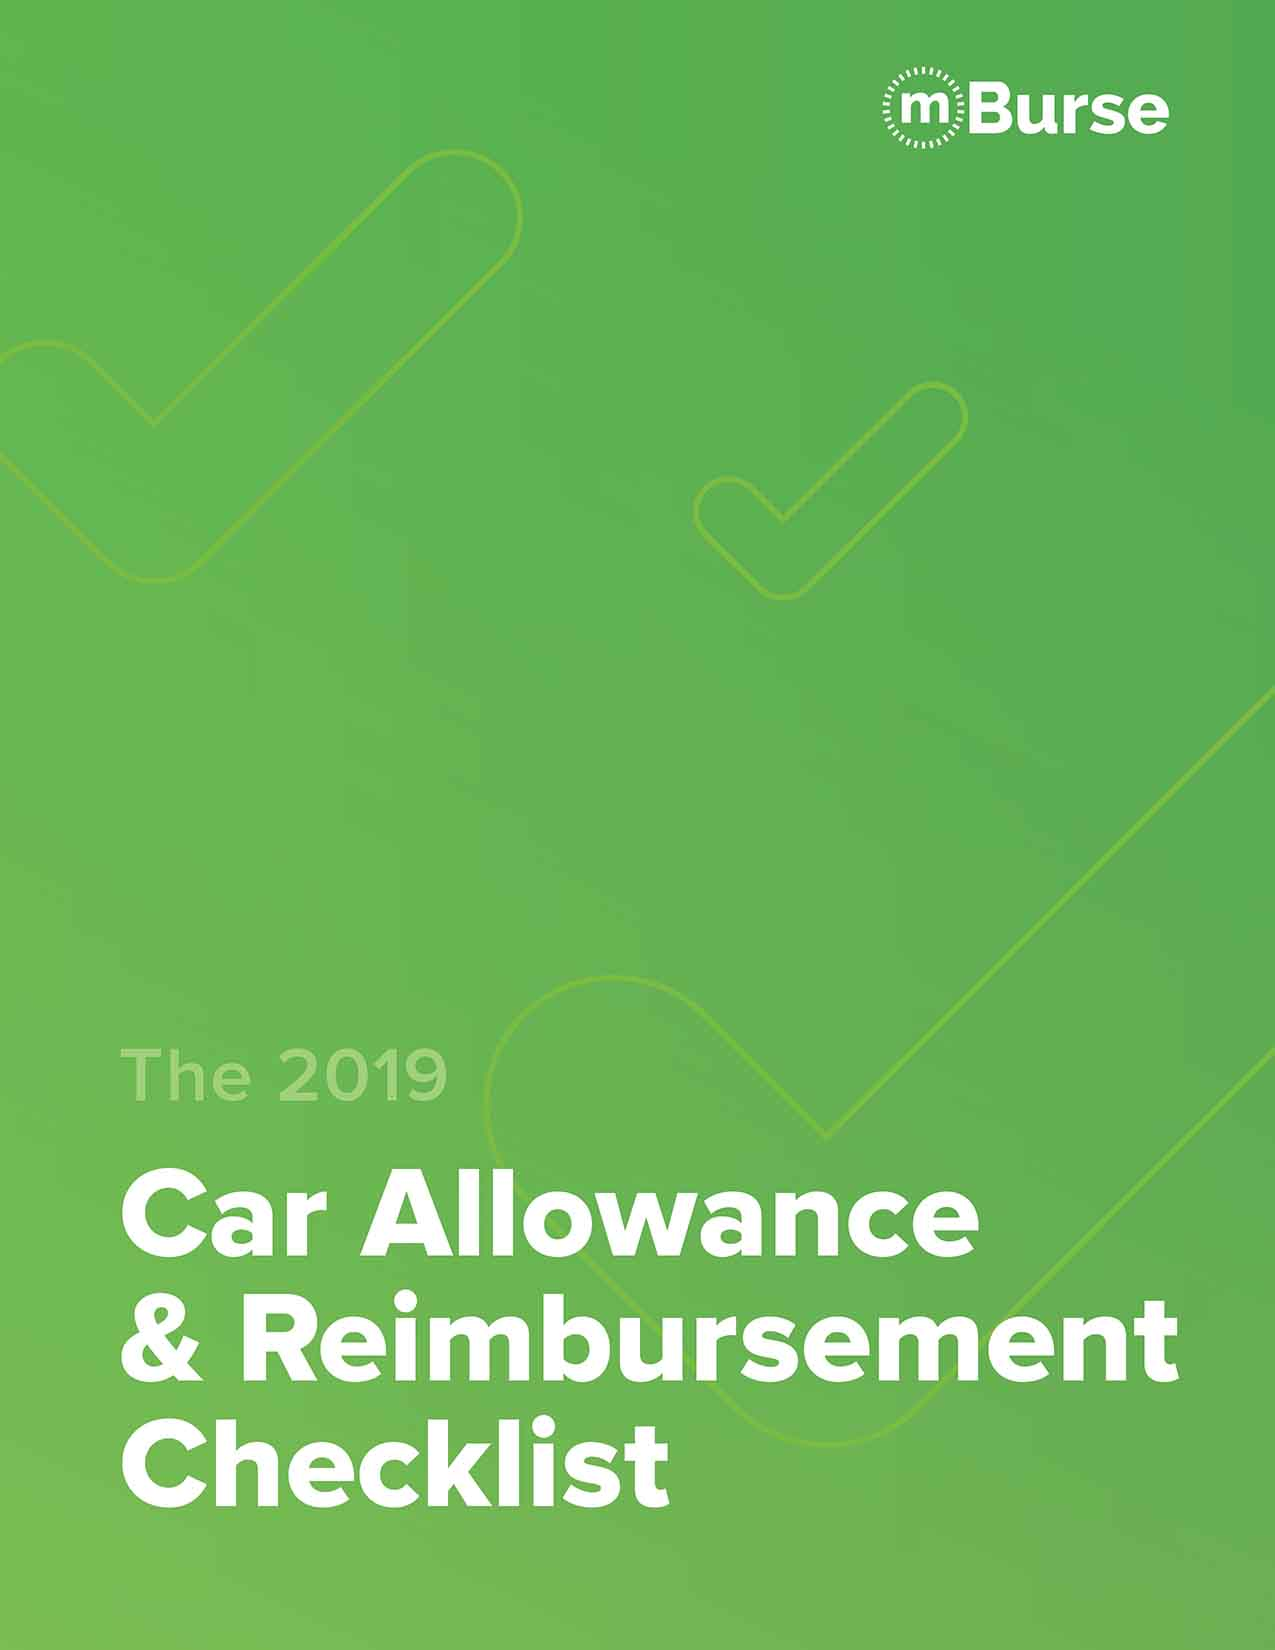 mBurse 2019 car allowance checklist